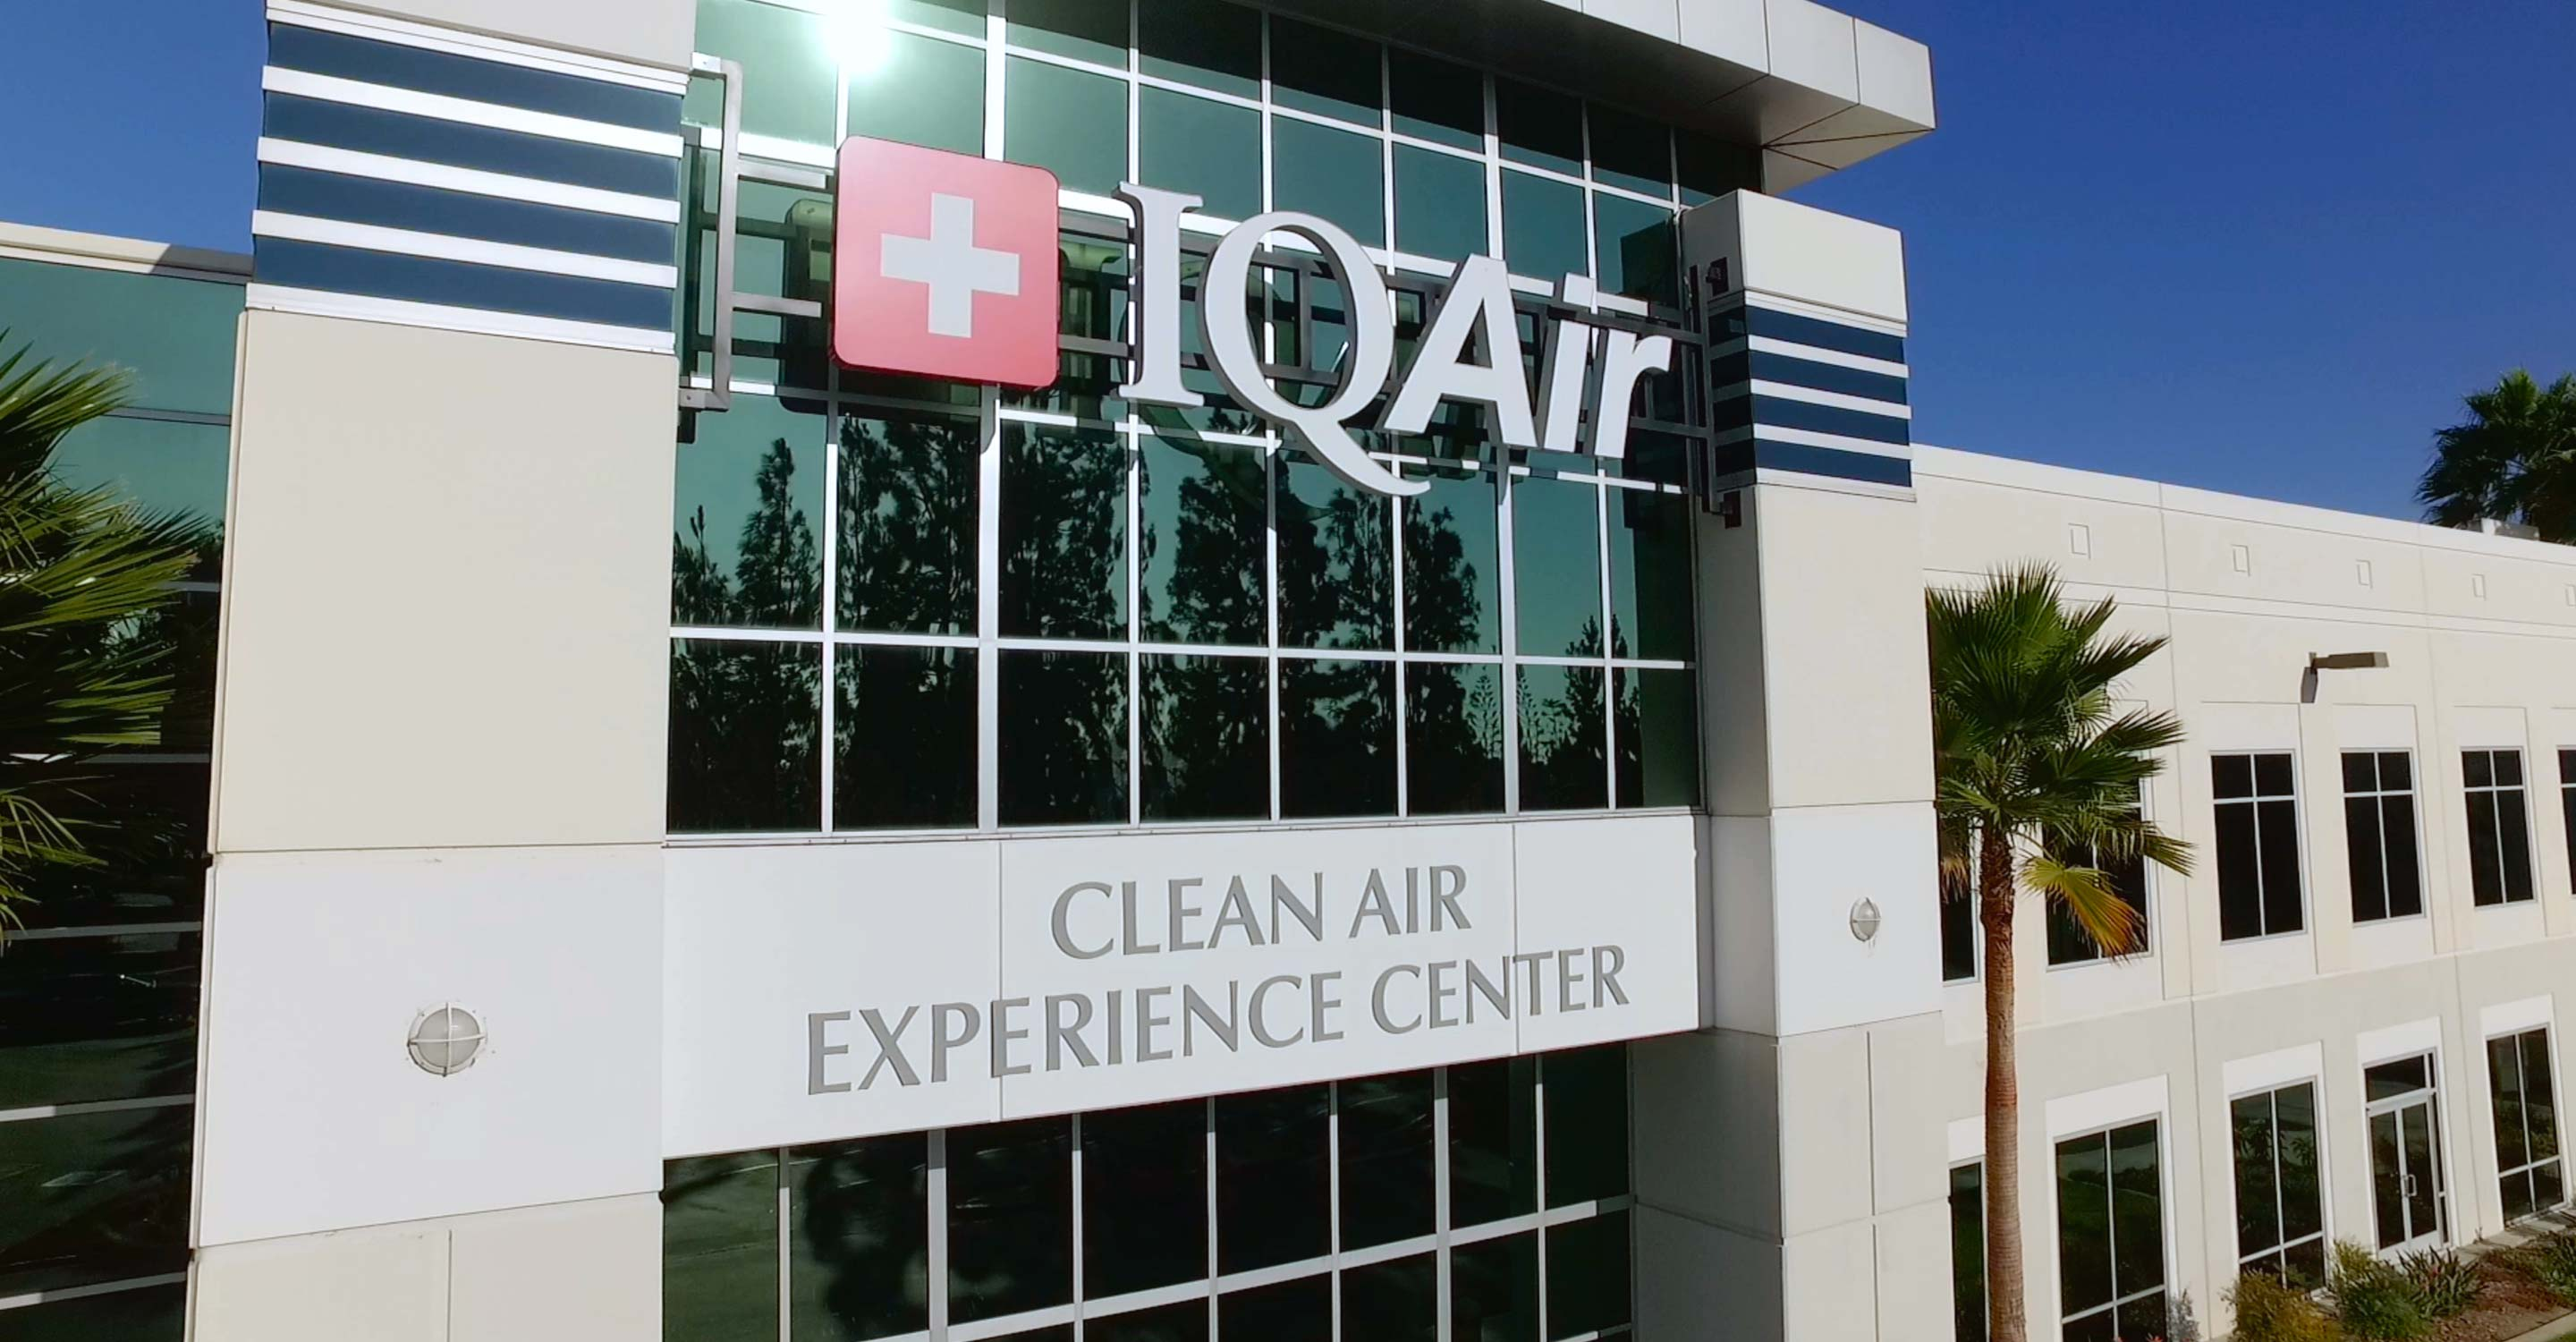 Front exterior photo of IQAir experience center.